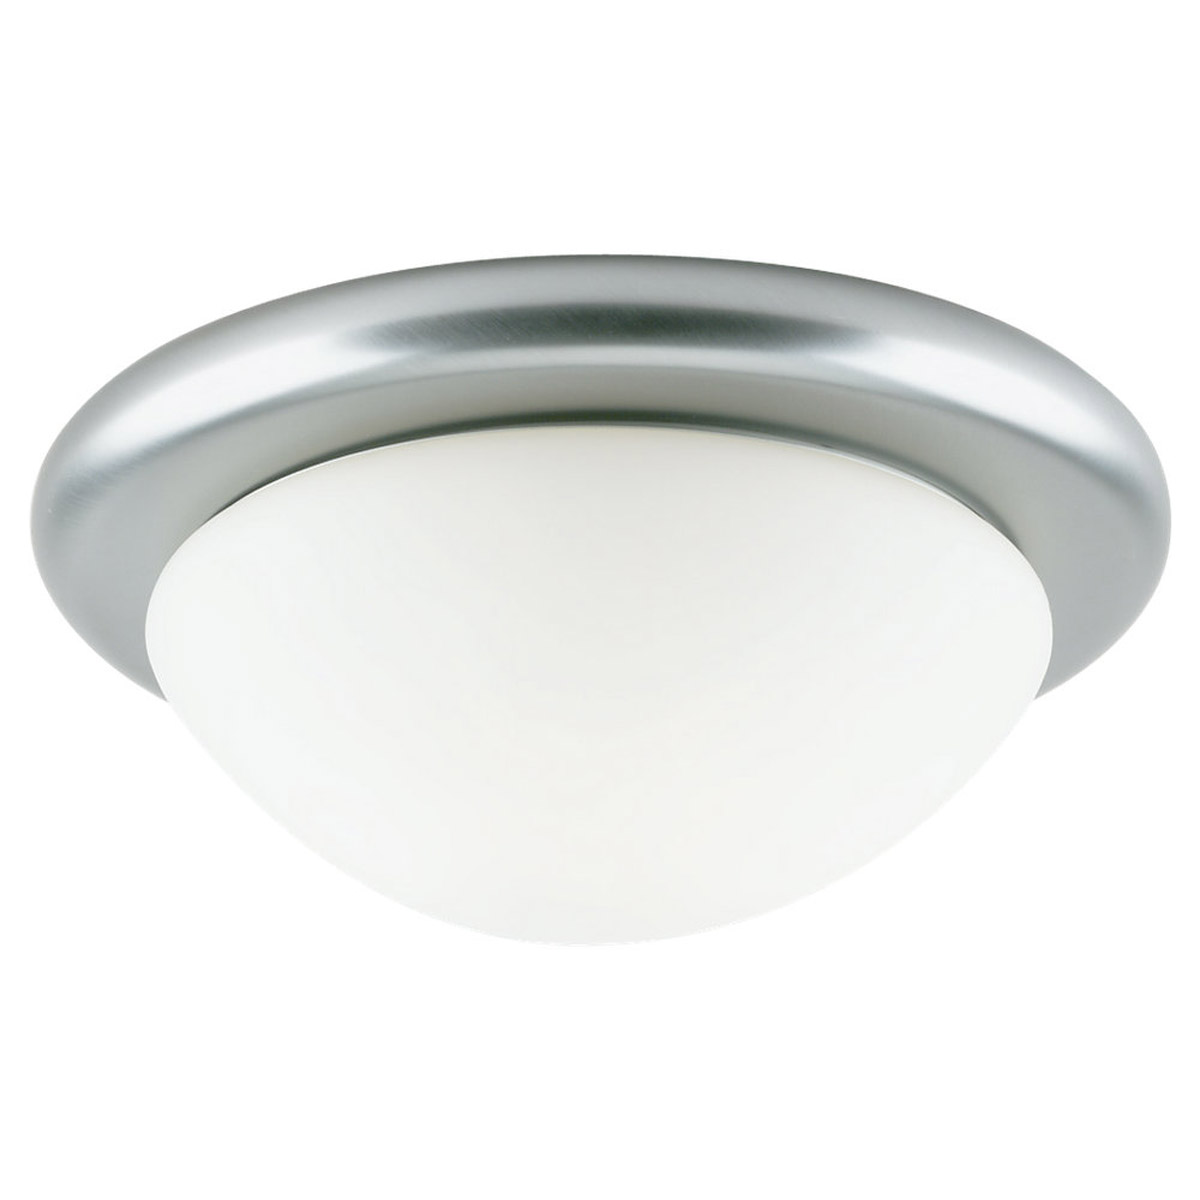 Sea Gull Lighting Twist-Lock Fitters 1 Light Flush Mount in Brushed Nickel 53069-962 photo